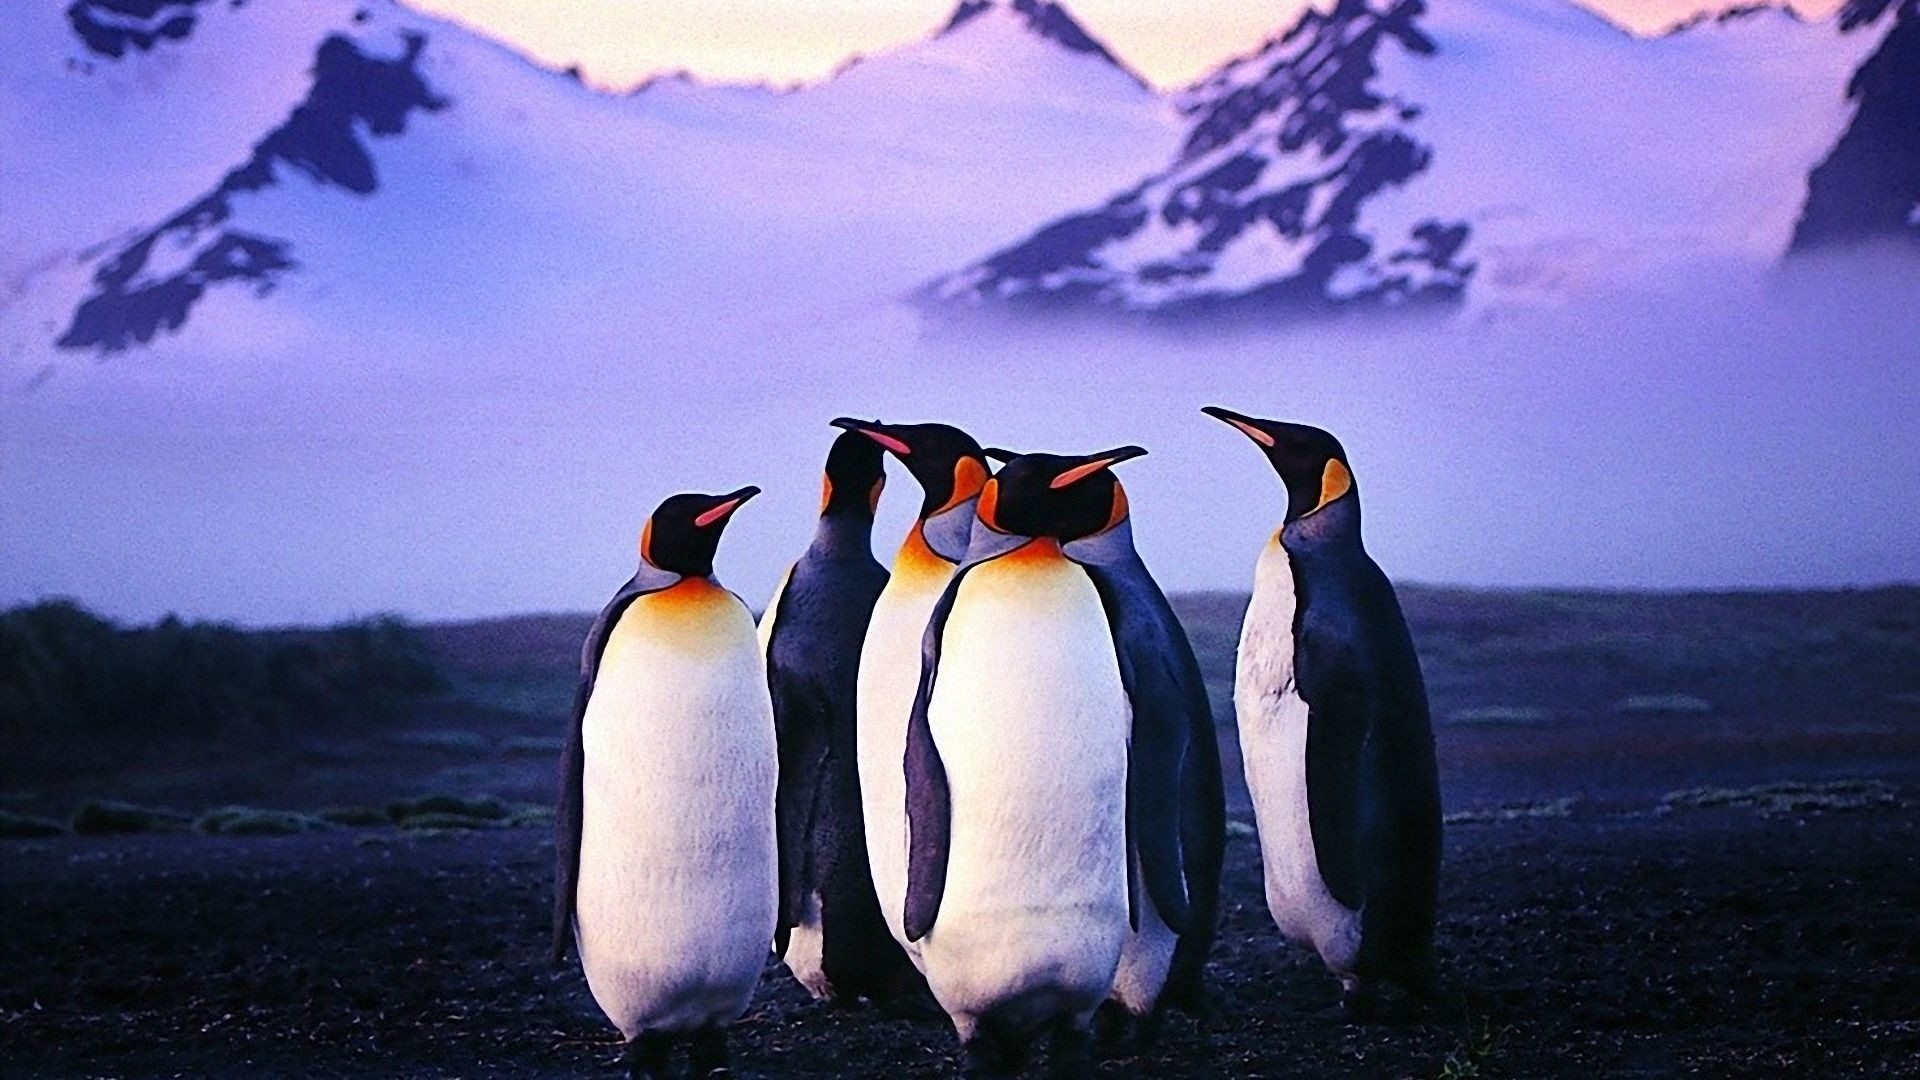 1920x1080 Penguin Wallpaper Pictures HD Desktop Wallpaper, Background Image